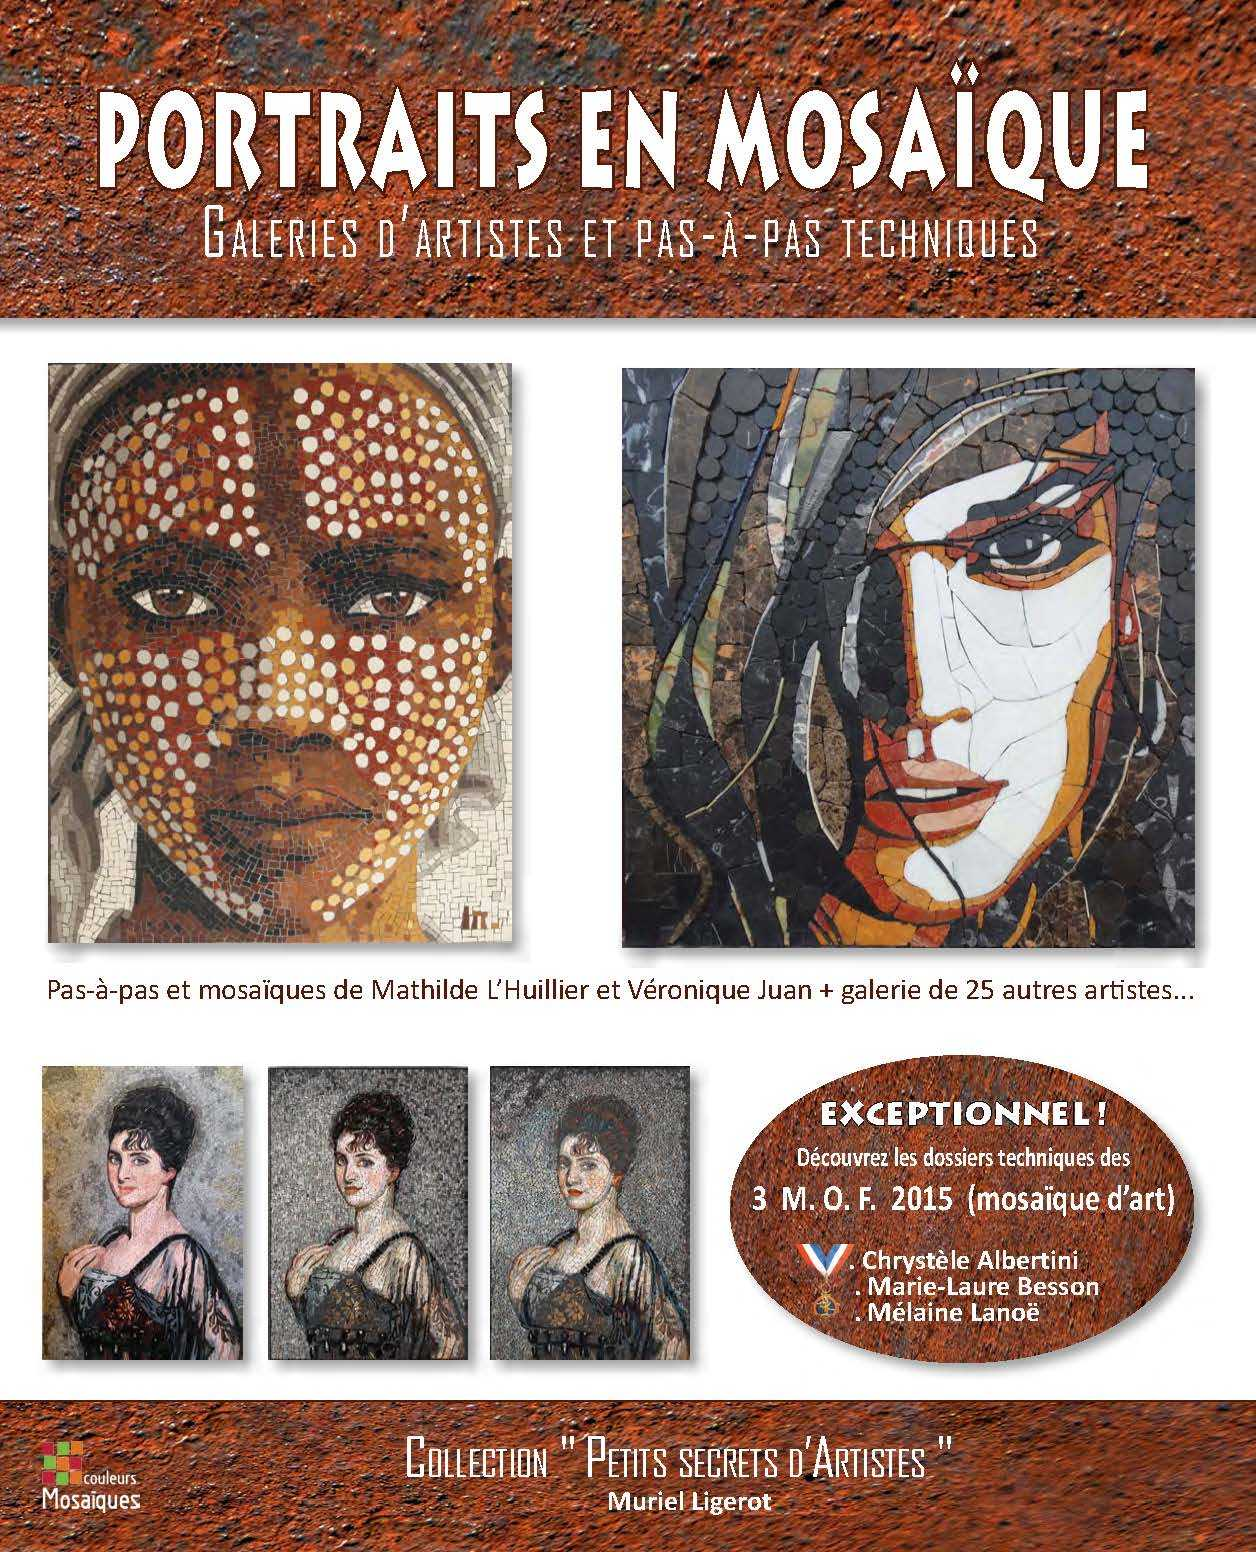 PORTRAITS EN MOSAIQUE